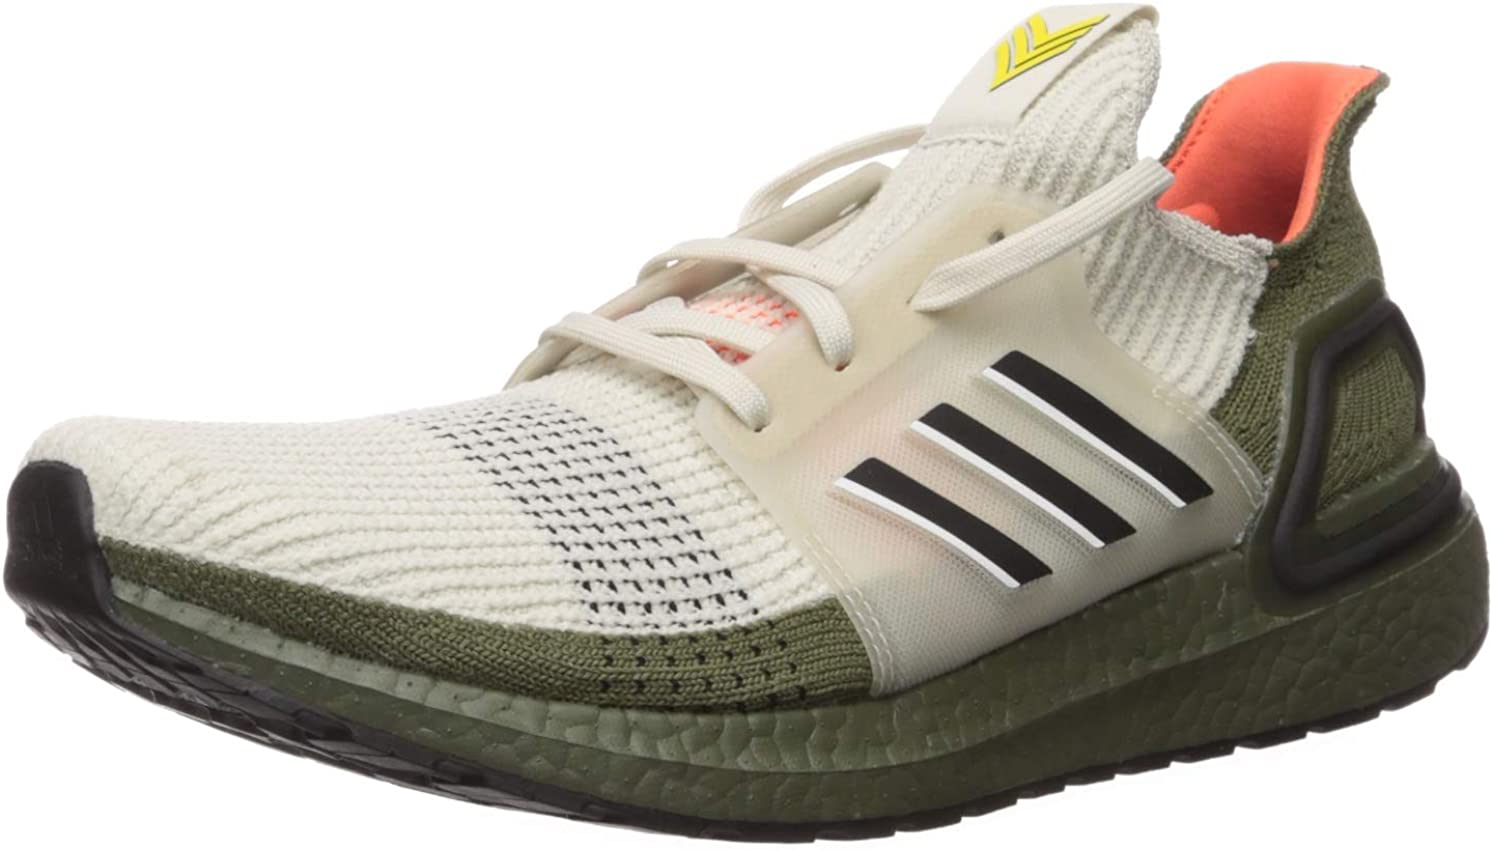 Puno aficionado Higgins  Amazon.com | adidas Men's Ultraboost 19 m Running Shoe | Shoes